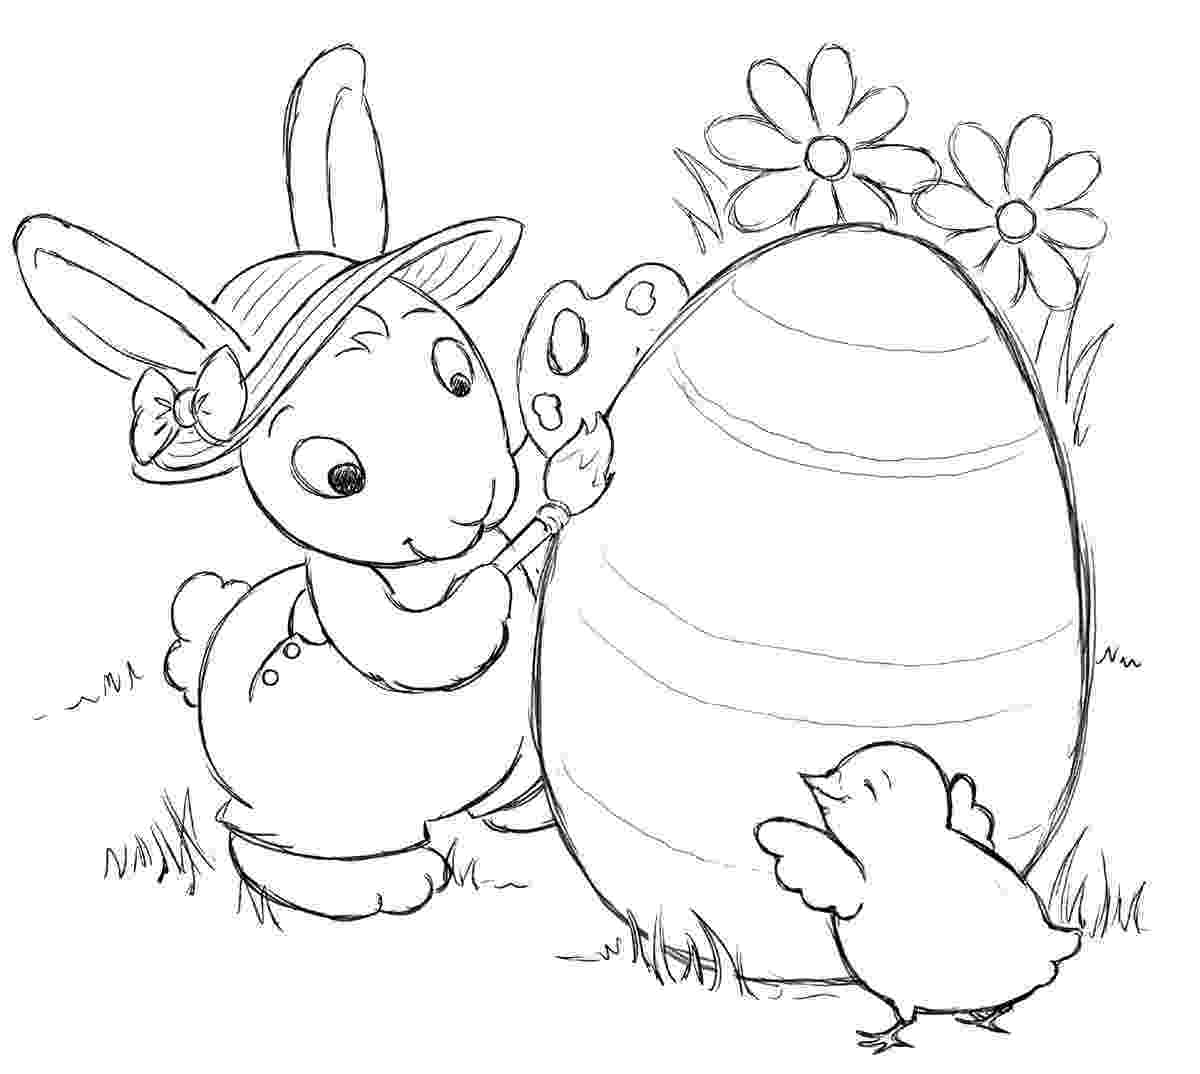 coloring pages bunnies printable bunny coloring pages best coloring pages for kids printable pages bunnies coloring